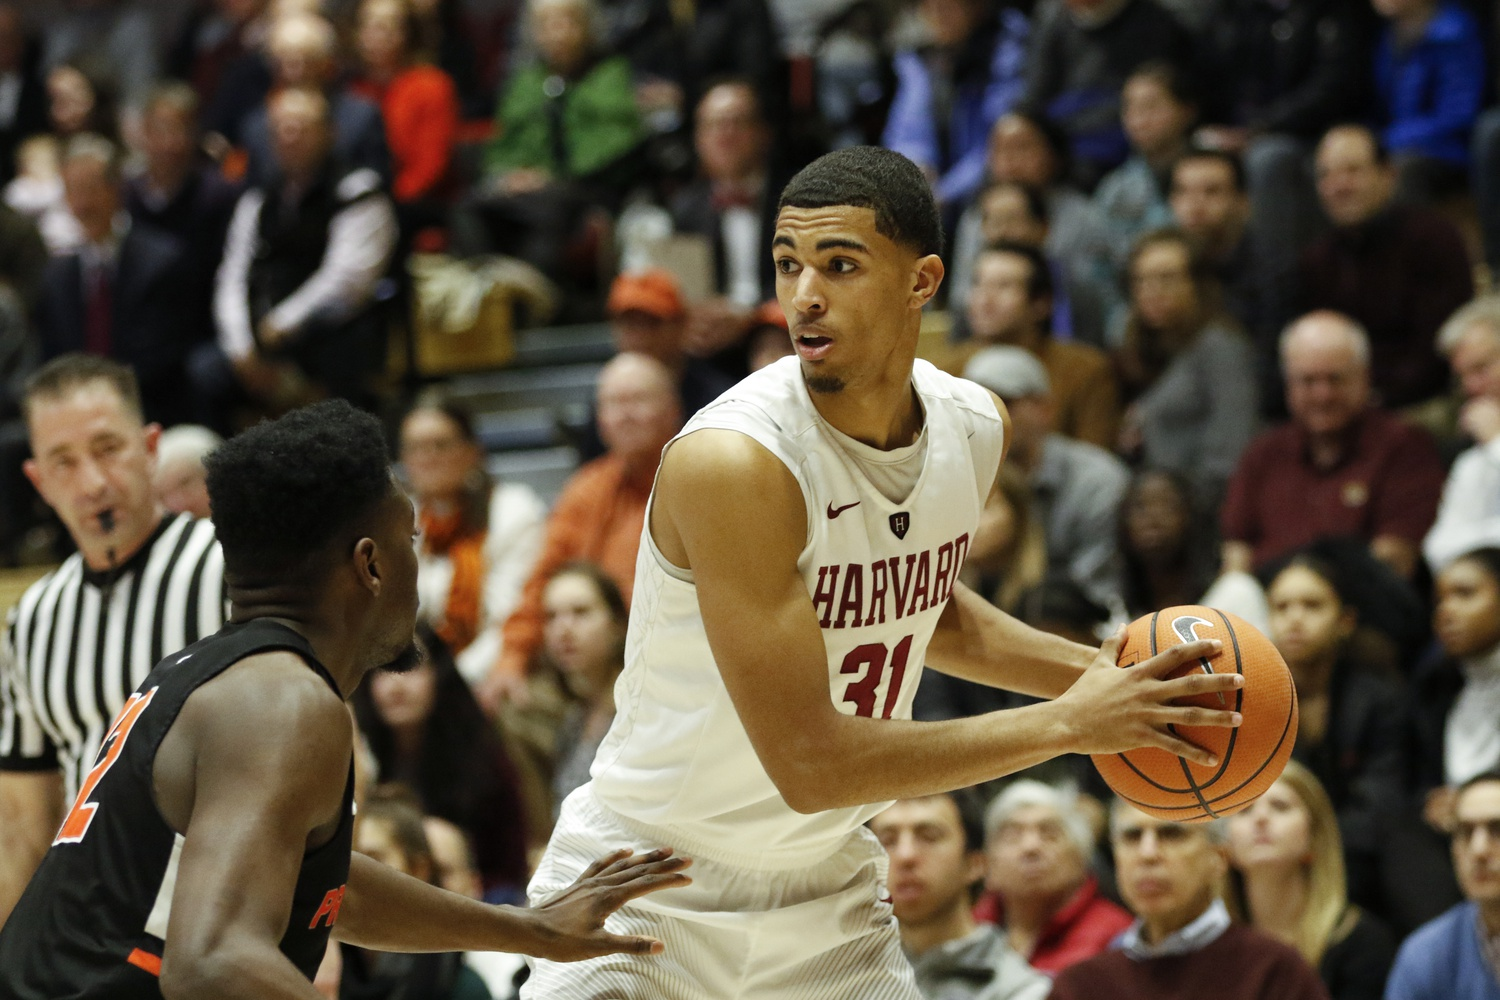 The Columbus, Ohio native last played in the 2017-2018 season, one in which he took home Ivy League Player of the Year.